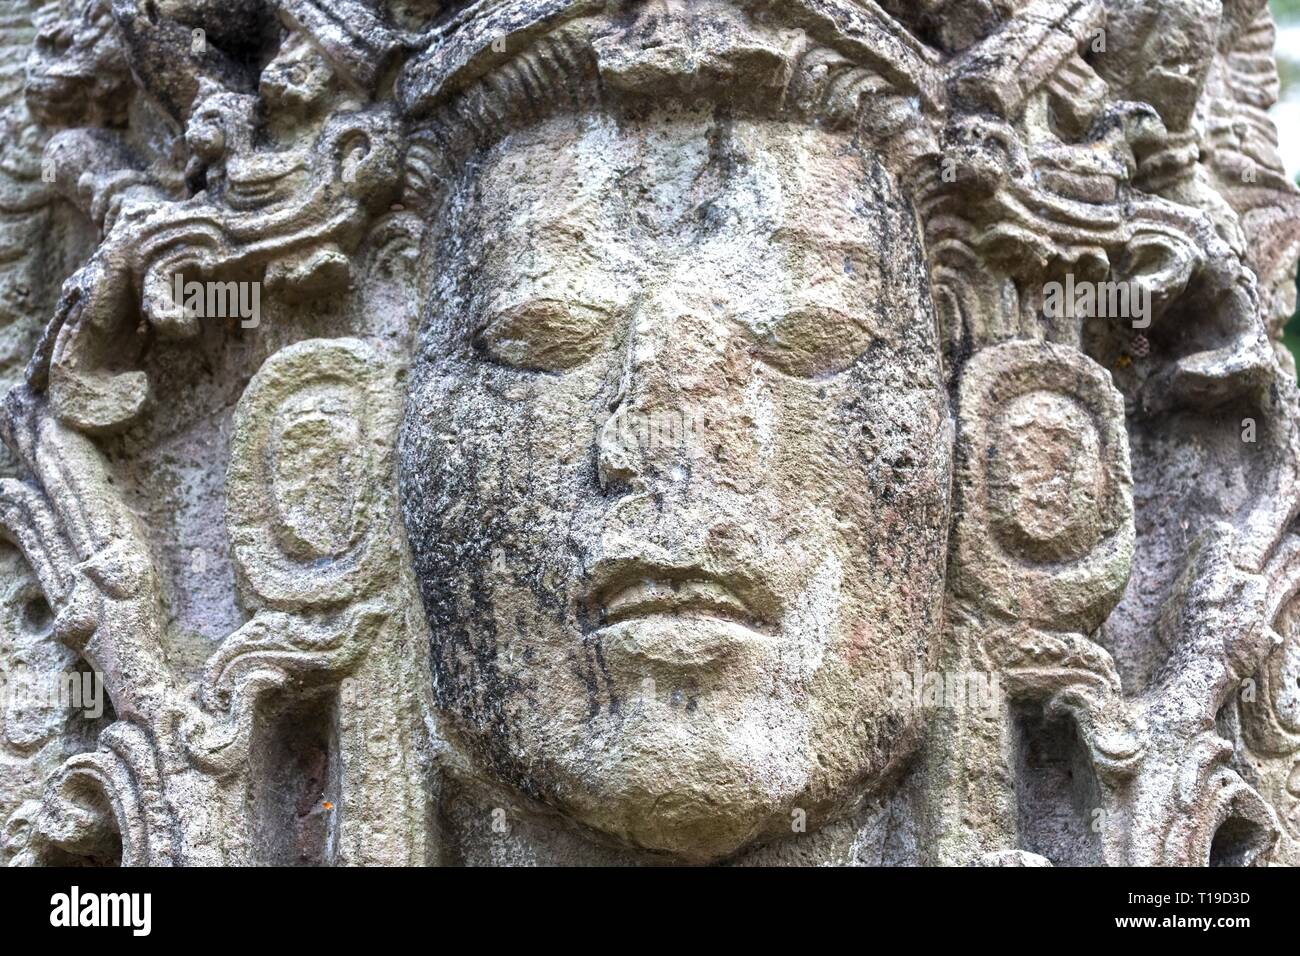 Mayan Face Carved in Stone Temple, World Famous Copan Ruins Archeological Site of ancient Maya Civilization, a UNESCO World Heritage Site in Honduras - Stock Image